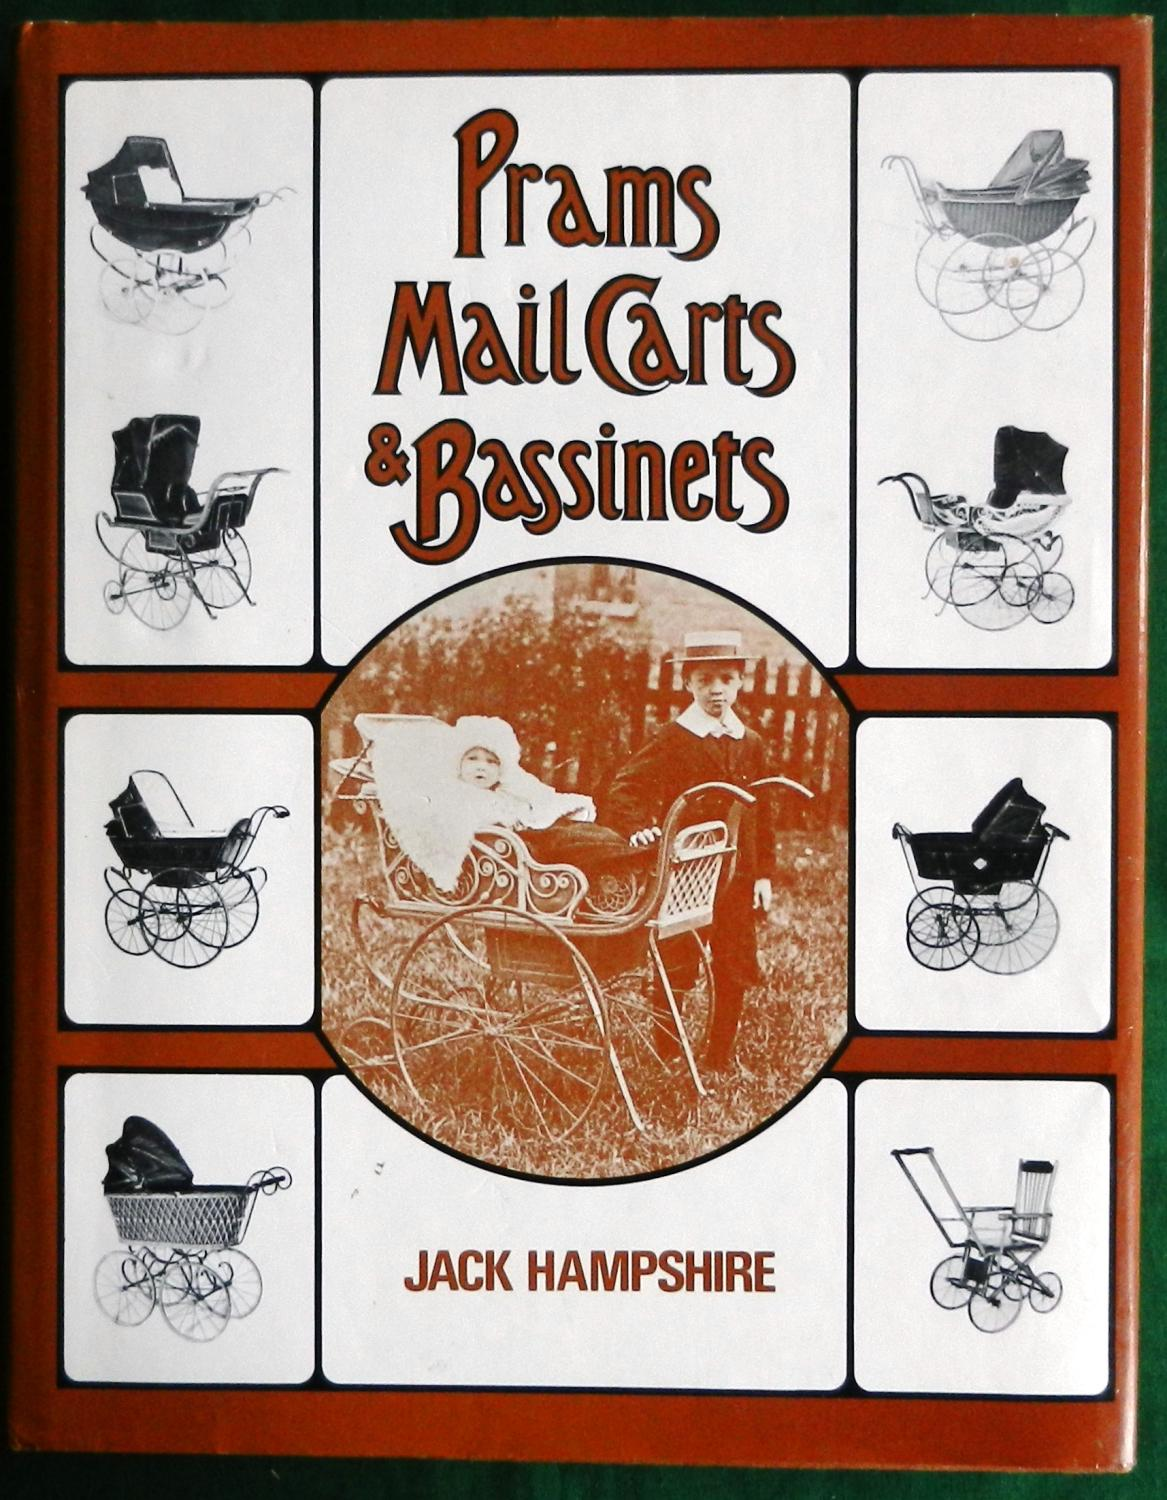 Prams, Mail Carts & Bassinets Hampshire, Jack: Fine Hardcover Large quarto, 240pp, profusely illustrated, brown boards, dustwrapper. The book is in fine condition with a dedication by Hampshire dated August 1983